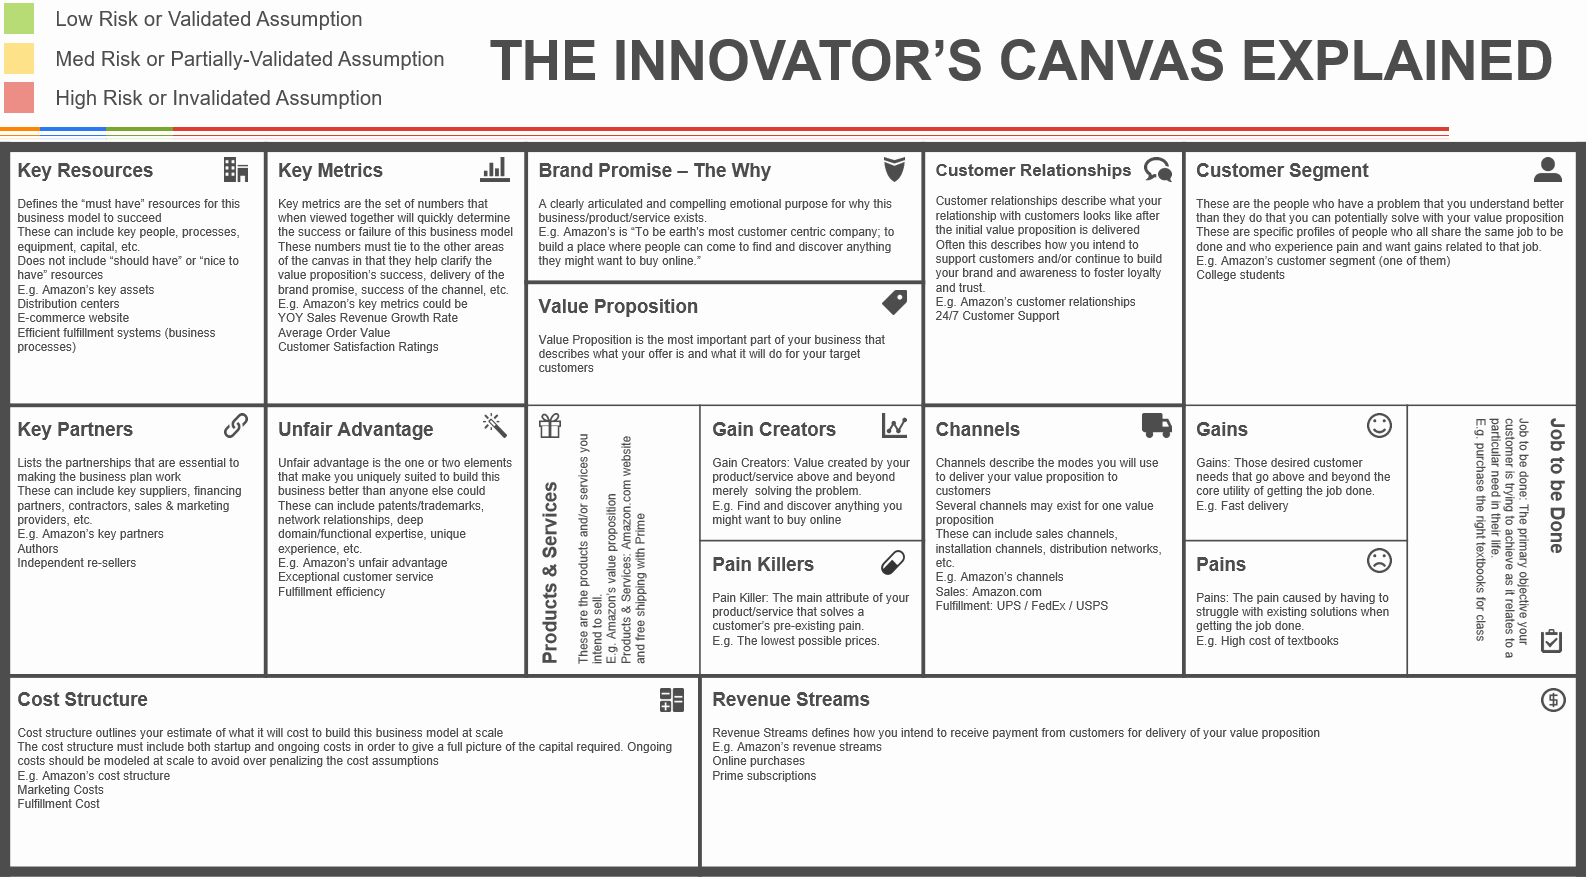 Business Model Canvas Template Excel Best Of the Innovator S Canvas A Step by Step Guide to Business